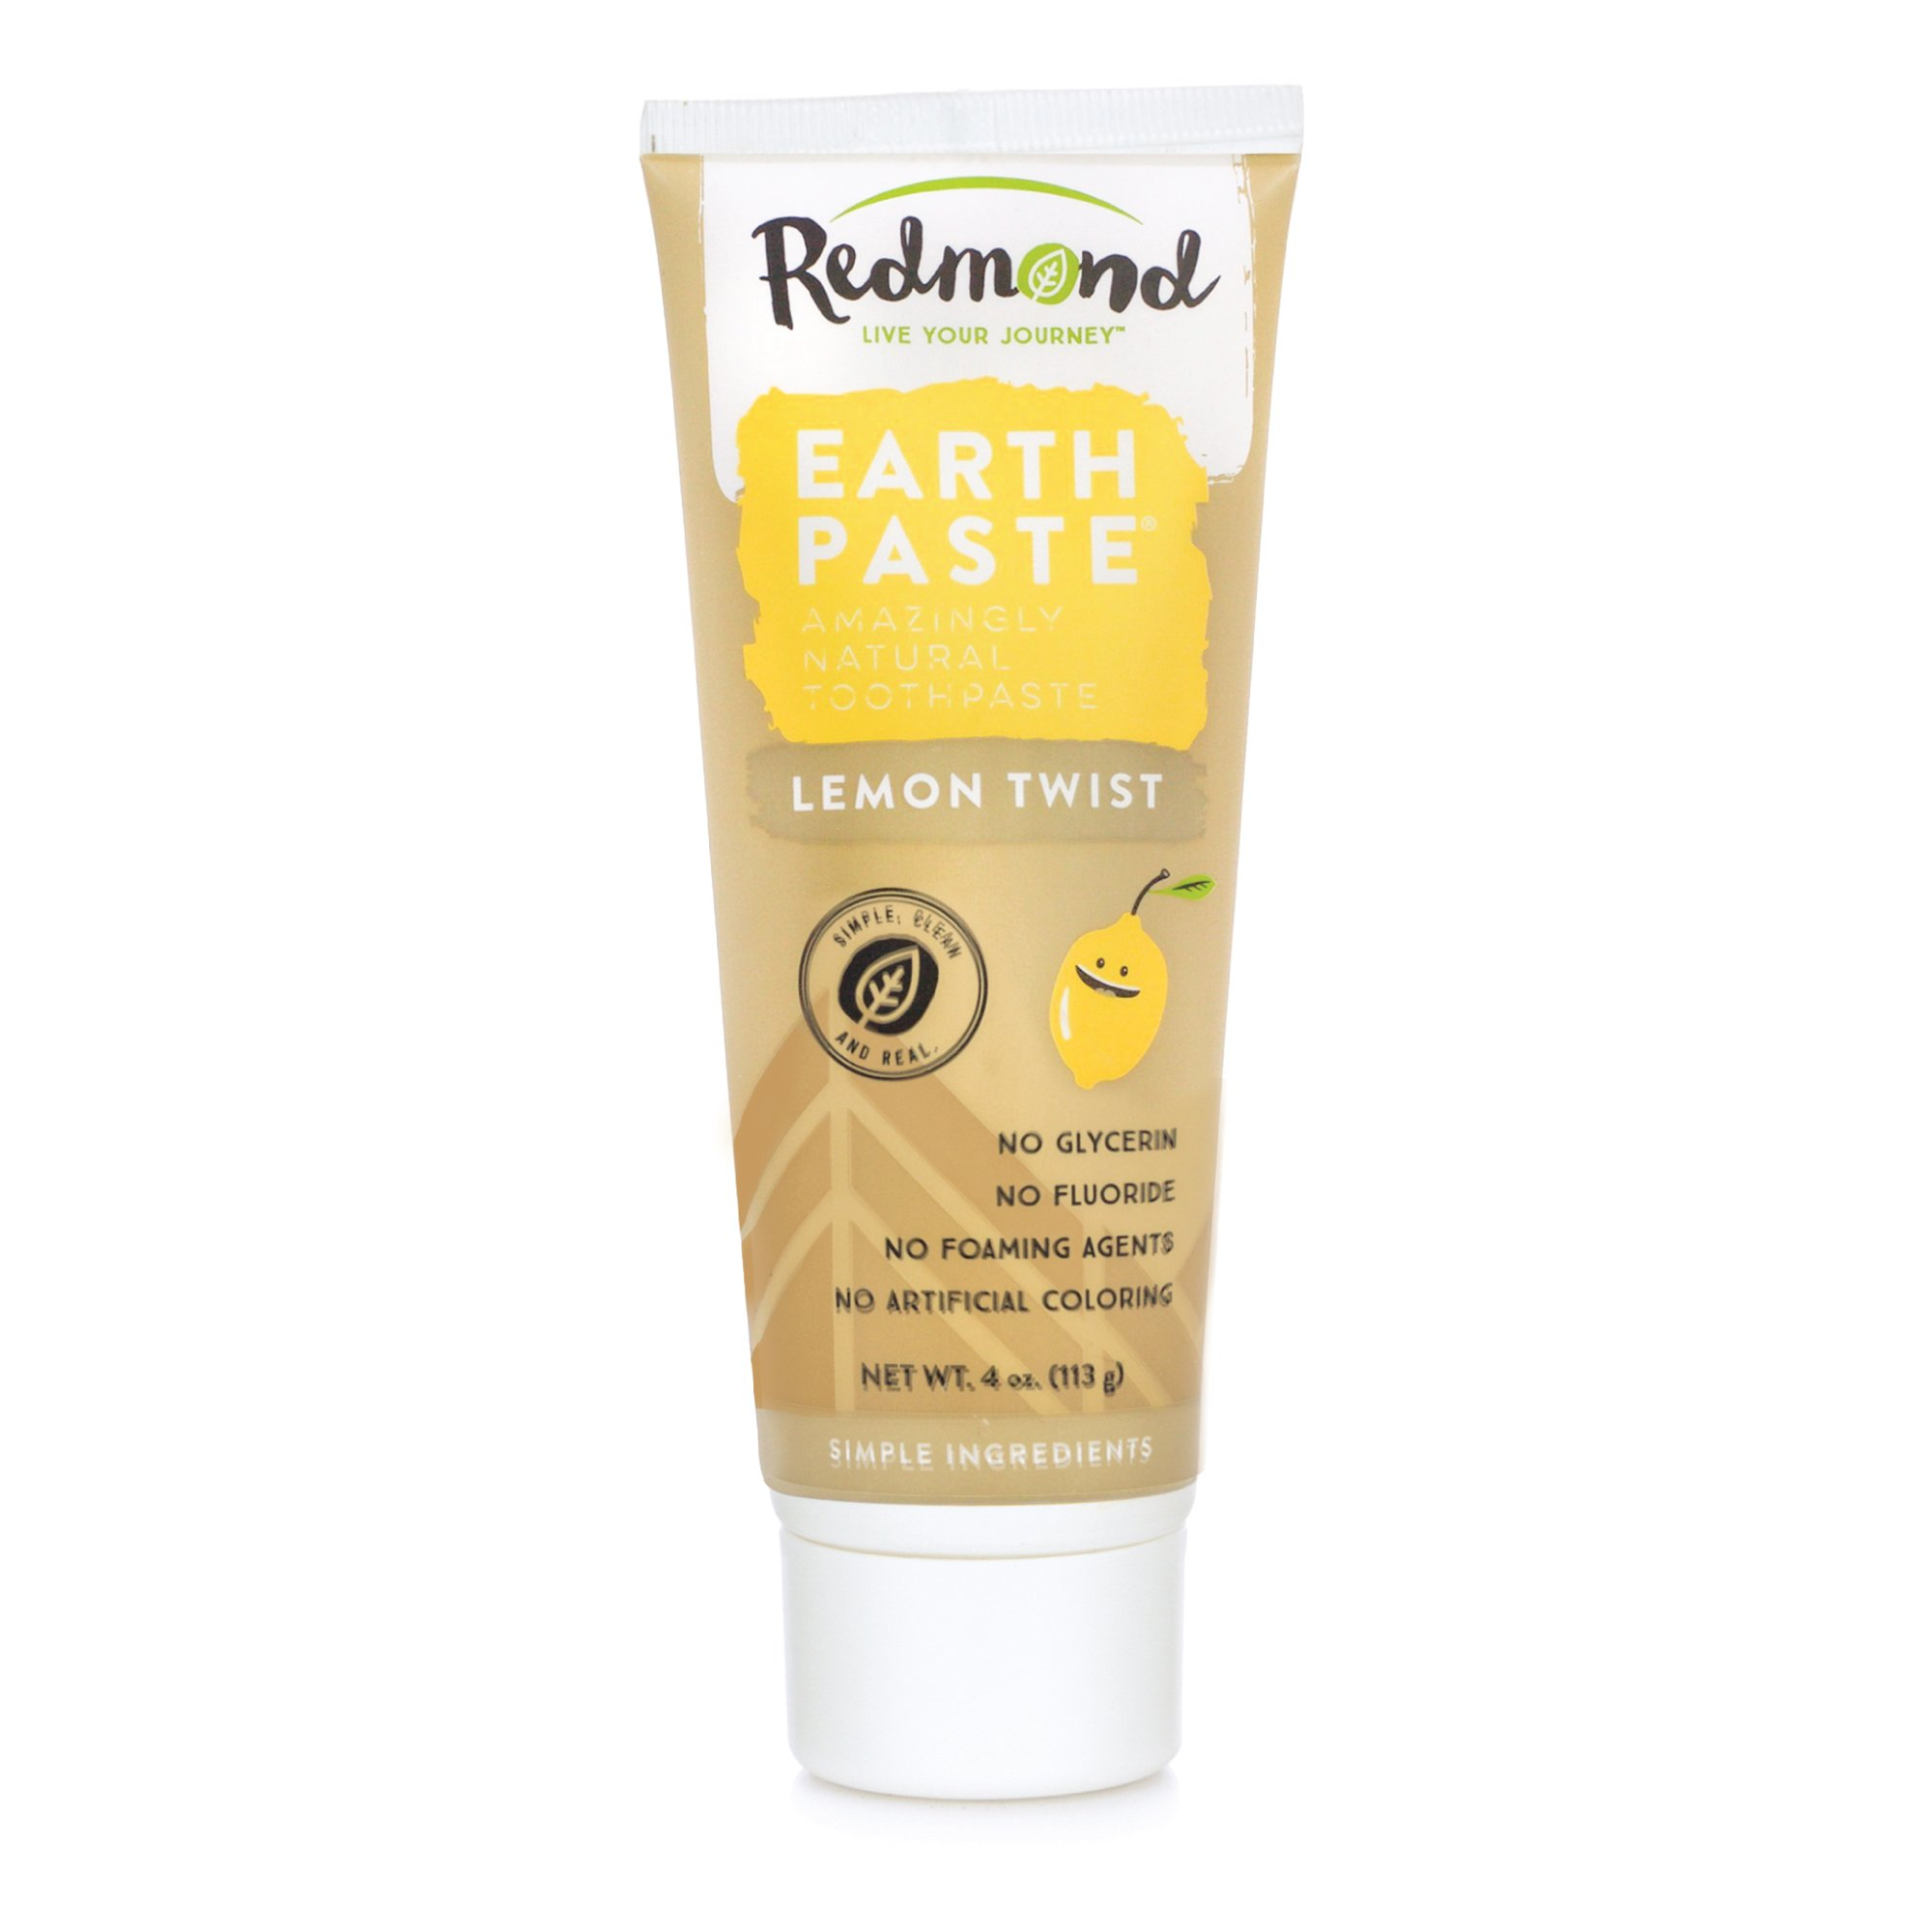 Redmond Earthpaste - Natural Non-Flouride Toothpaste, LemonTwist, 4 Ounce Tube (2 Pack)